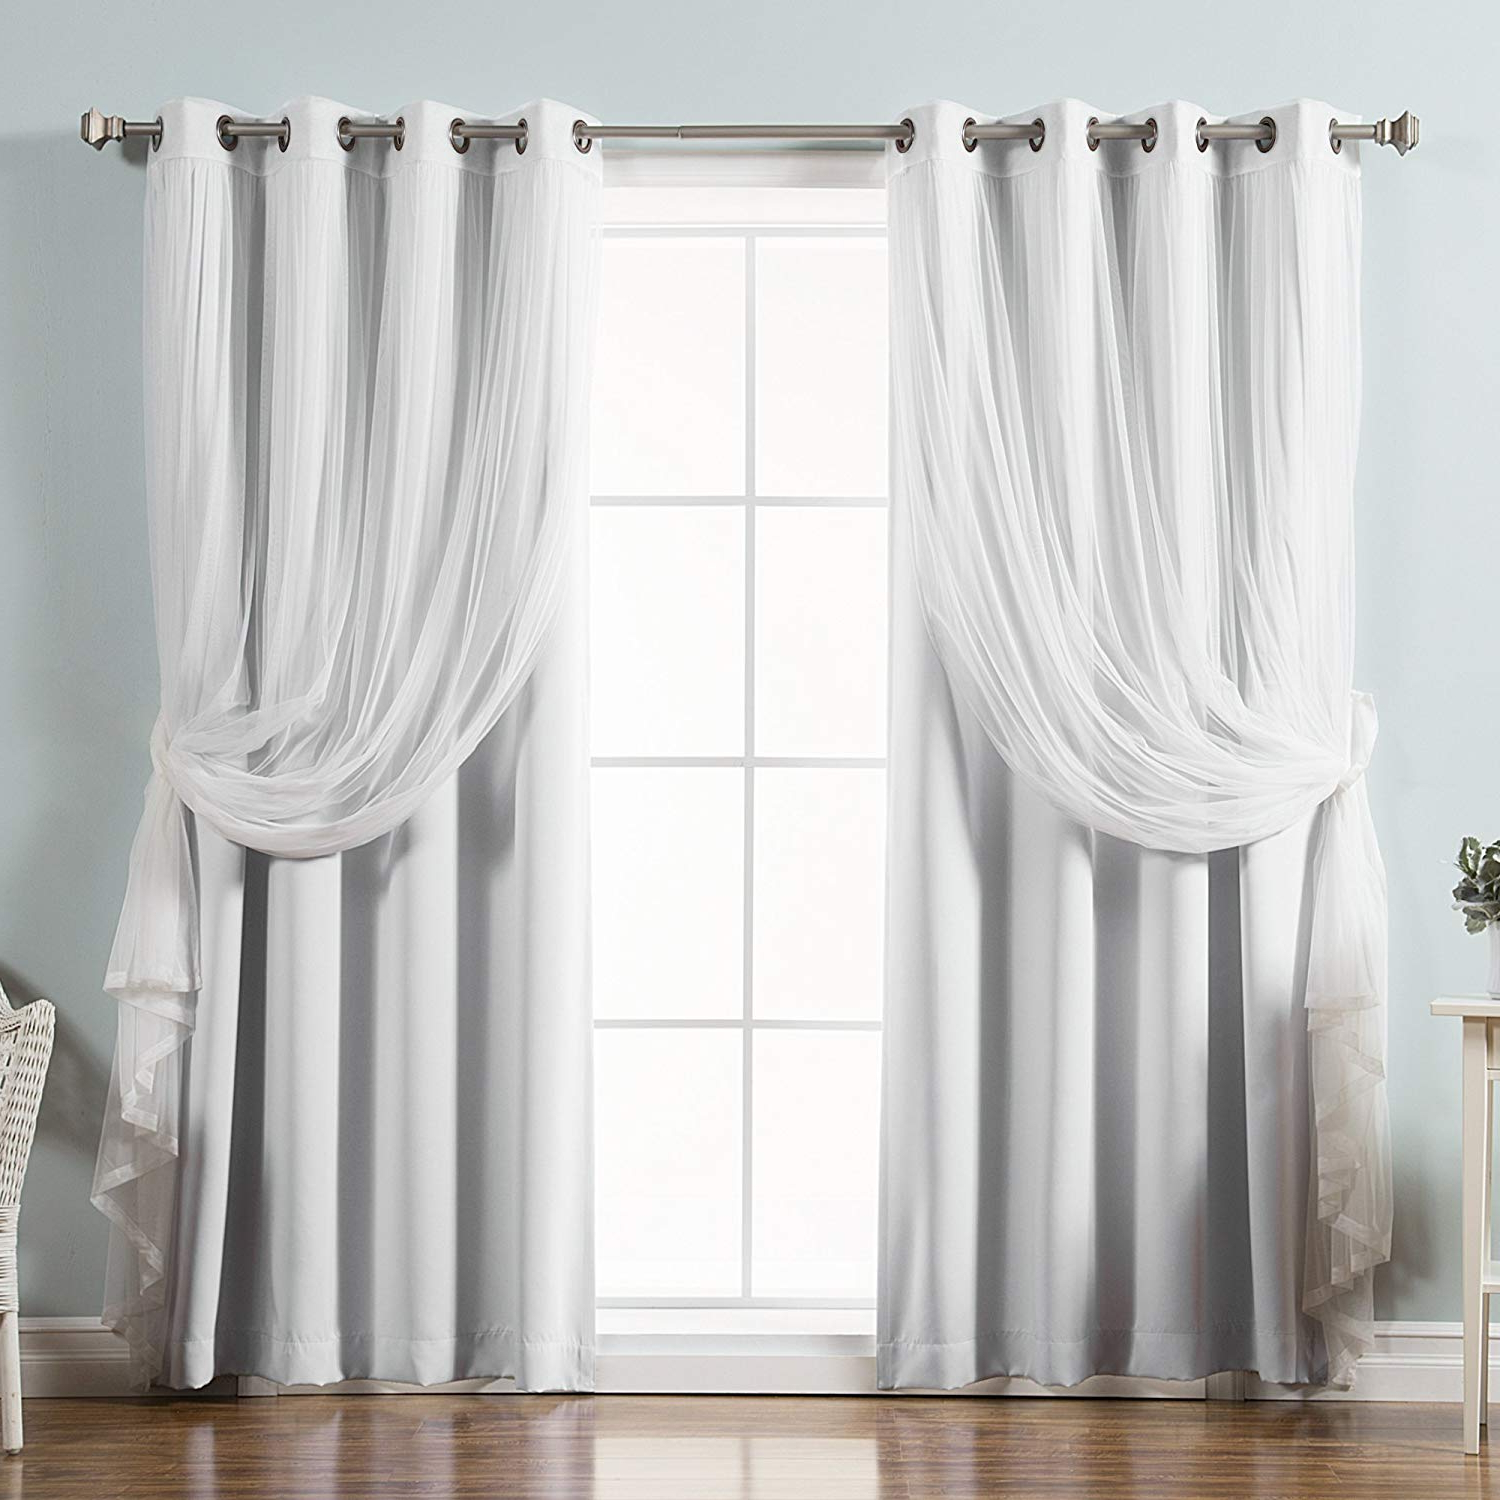 """Popular Mix And Match Blackout Tulle Lace Sheer Curtain Panel Sets Intended For Best Home Fashion Umixm Tulle Sheer Lace & Blackout 4 Piece Curtain Set – Antique Bronze Grommet Top – Vapor – 52"""" Wx 96"""" L – (set Of 4 Panels) (View 15 of 20)"""